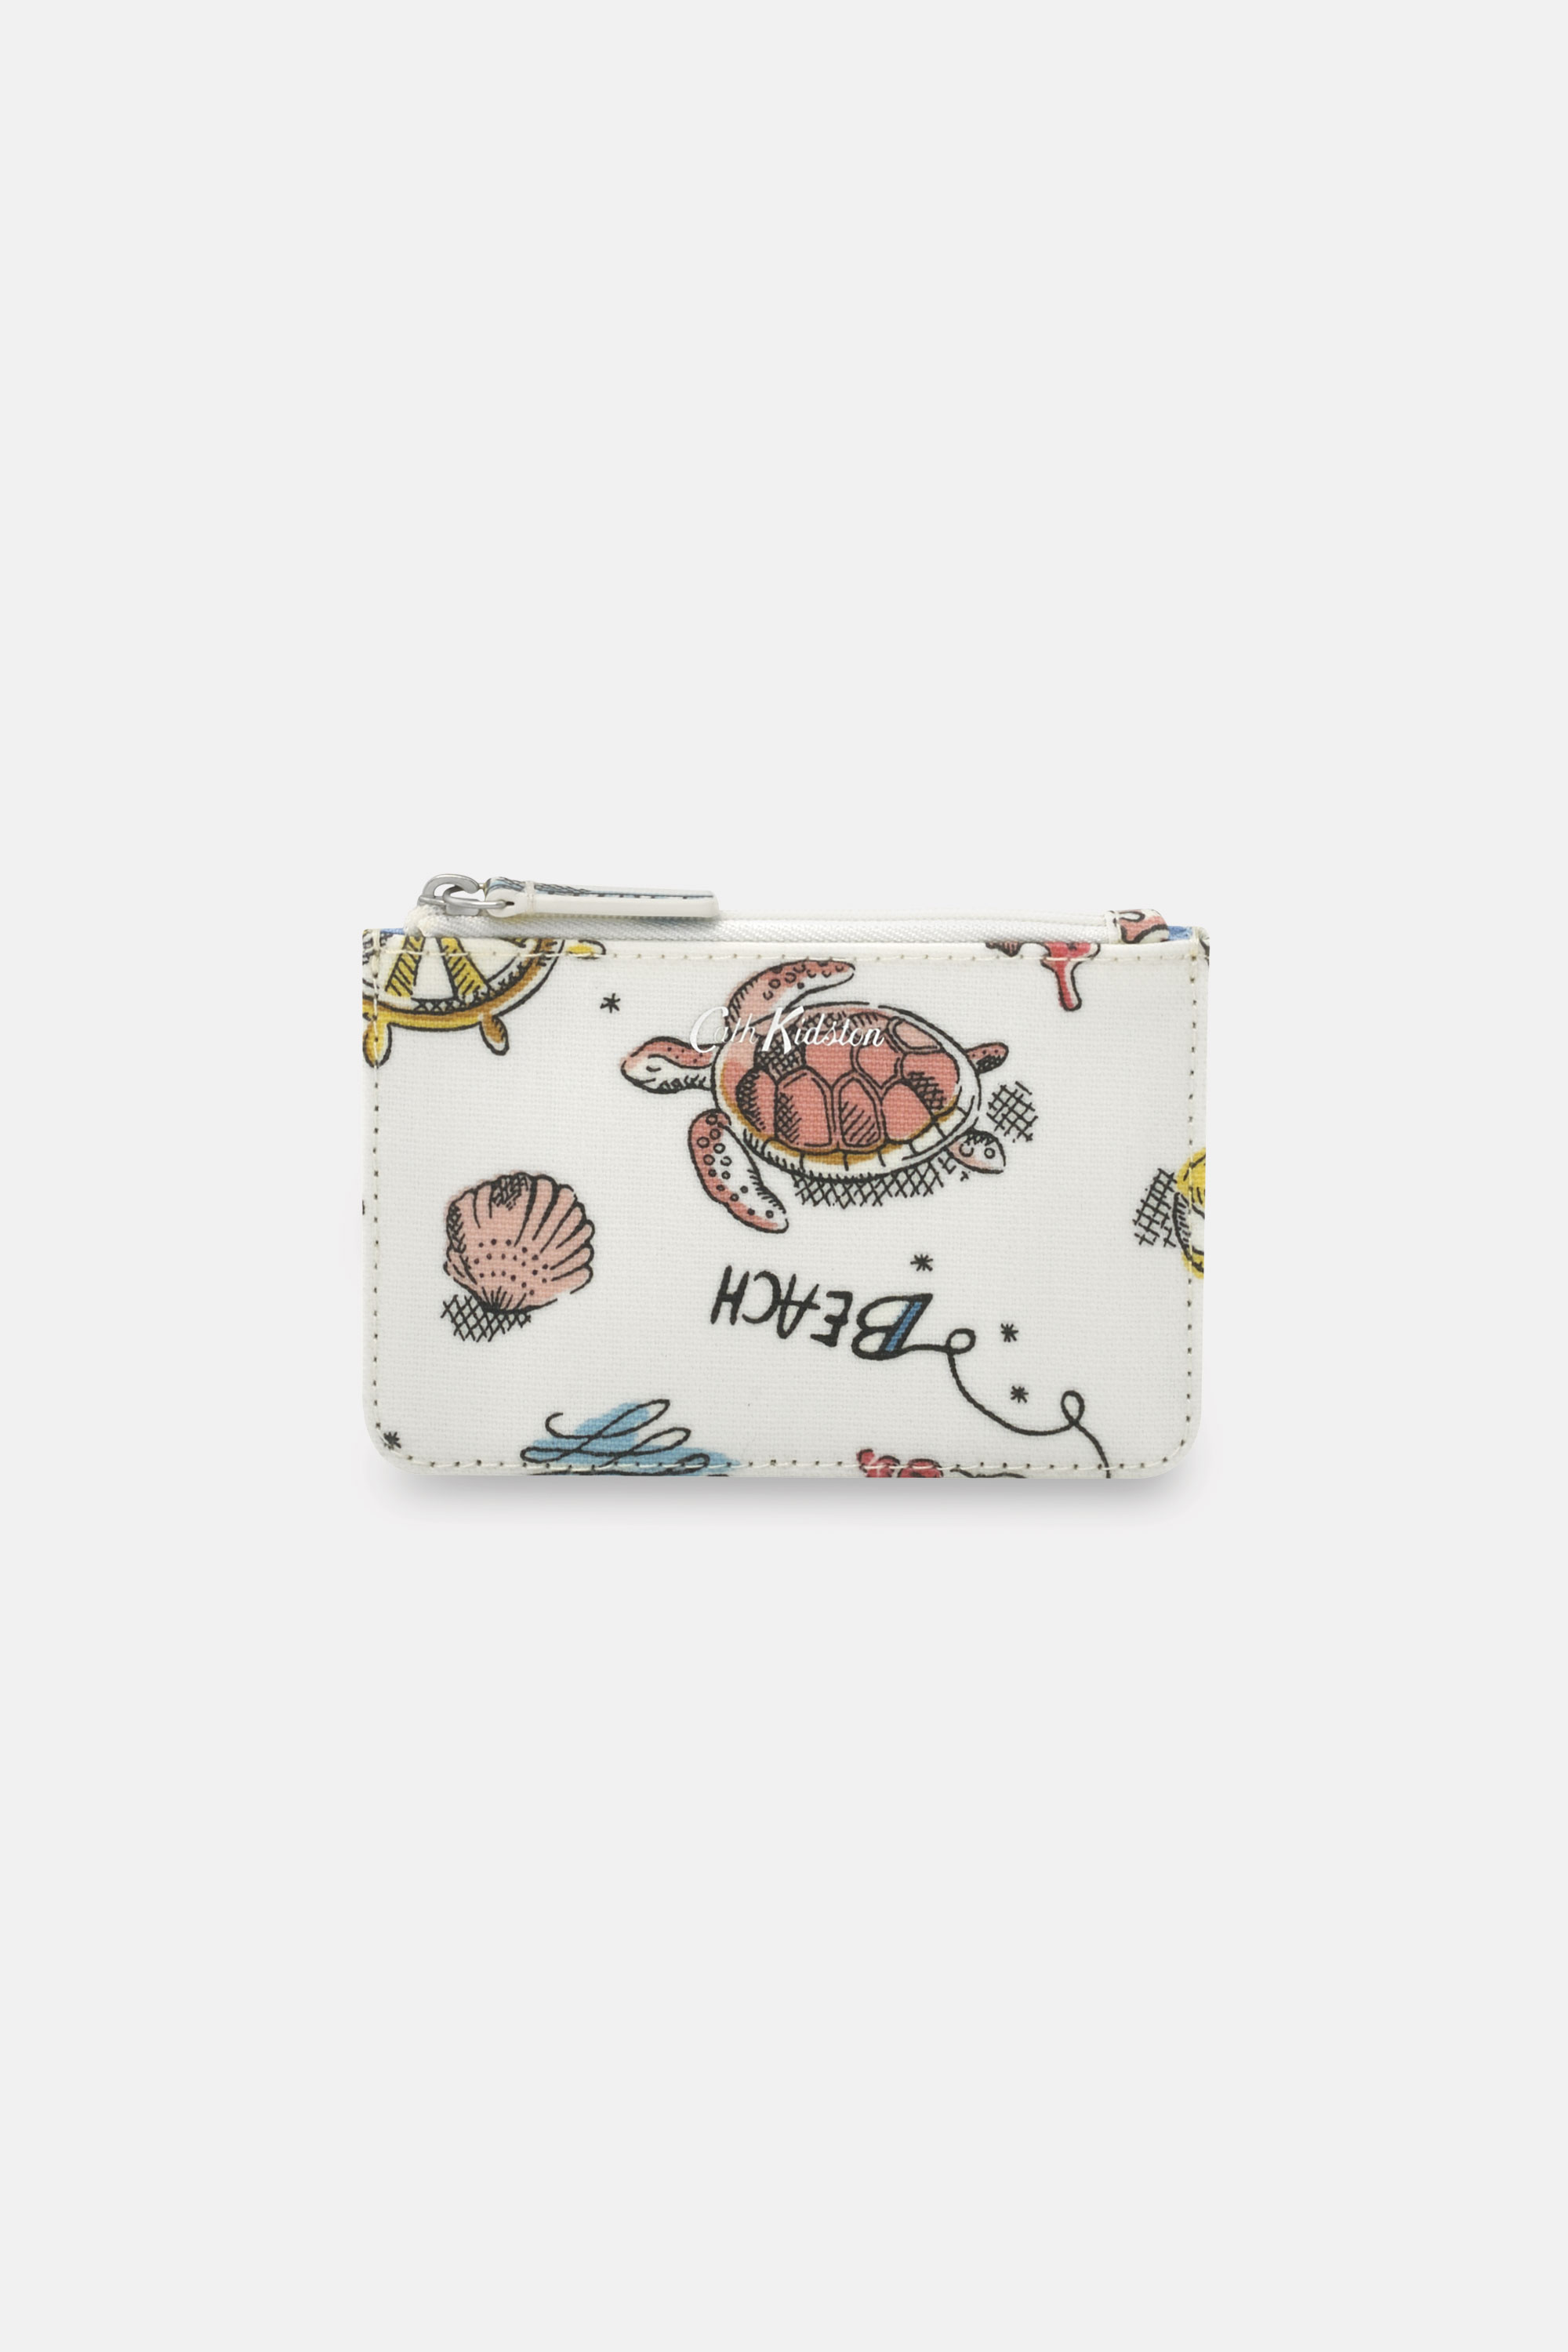 Cath Kidston Summer Time Small Card and Coin Purse in Warm Cream